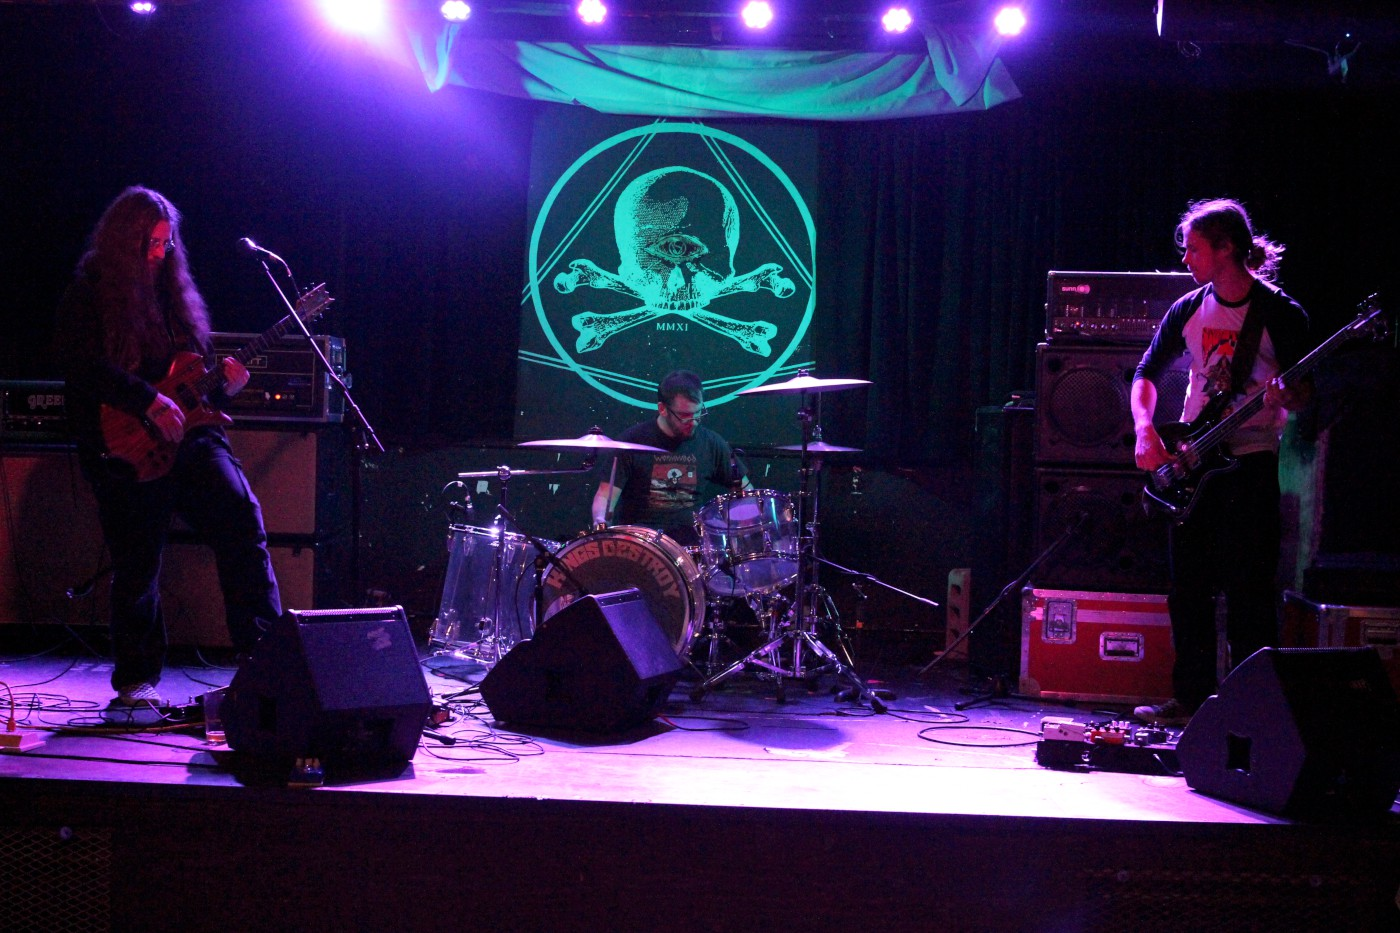 yob soundcheck (Photo by JJ Koczan)